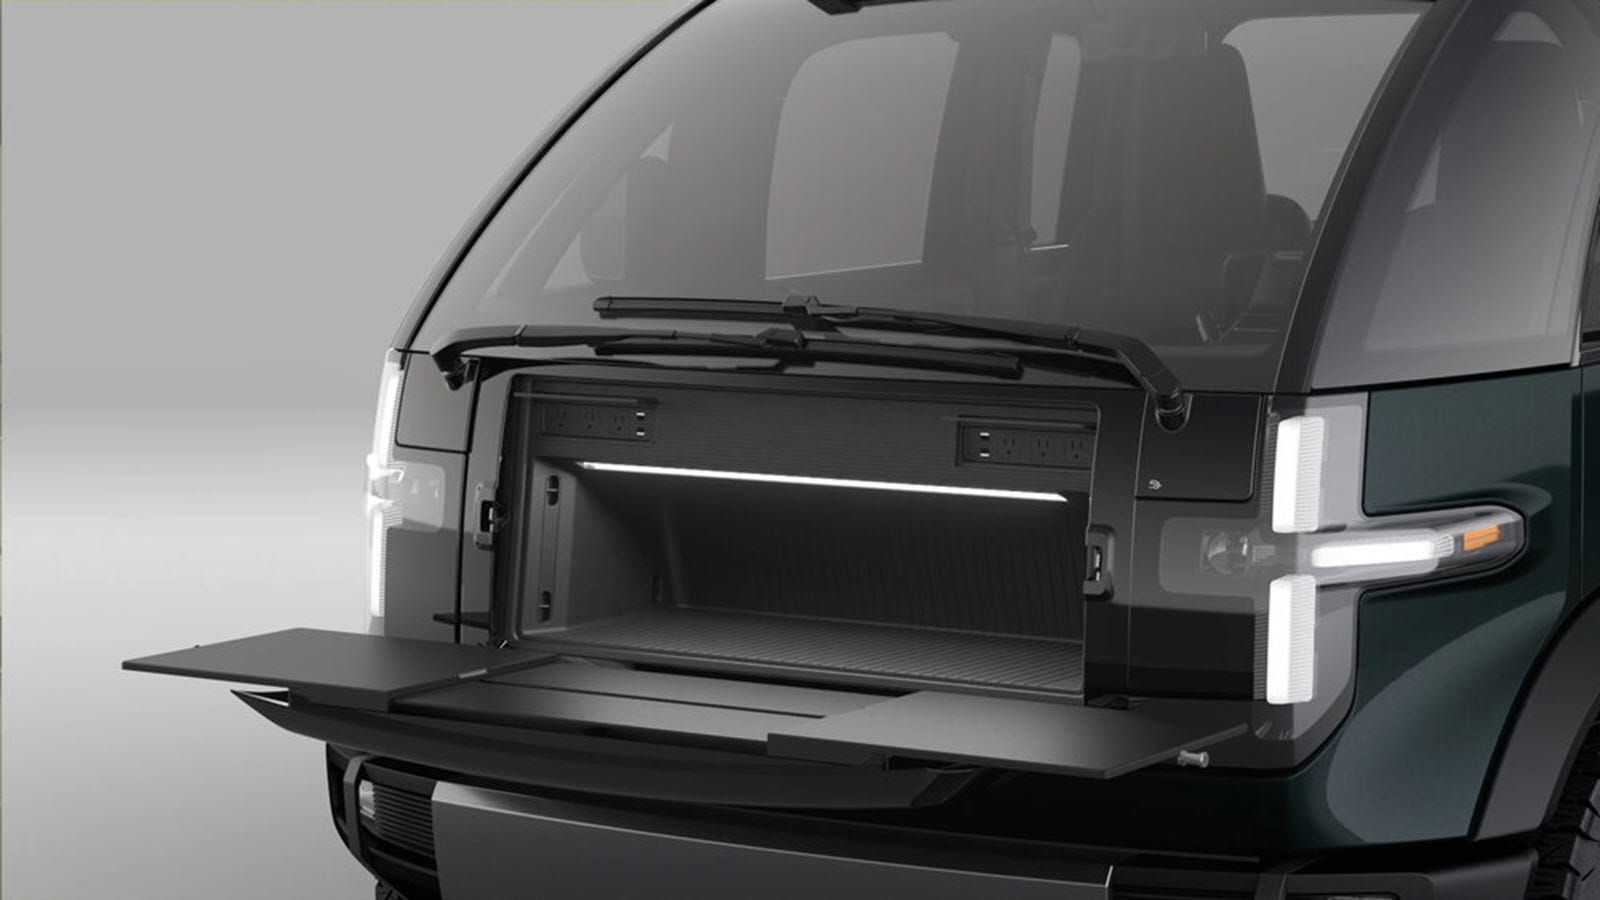 The front of the Canoo Pickup, with a fold-out workbench.